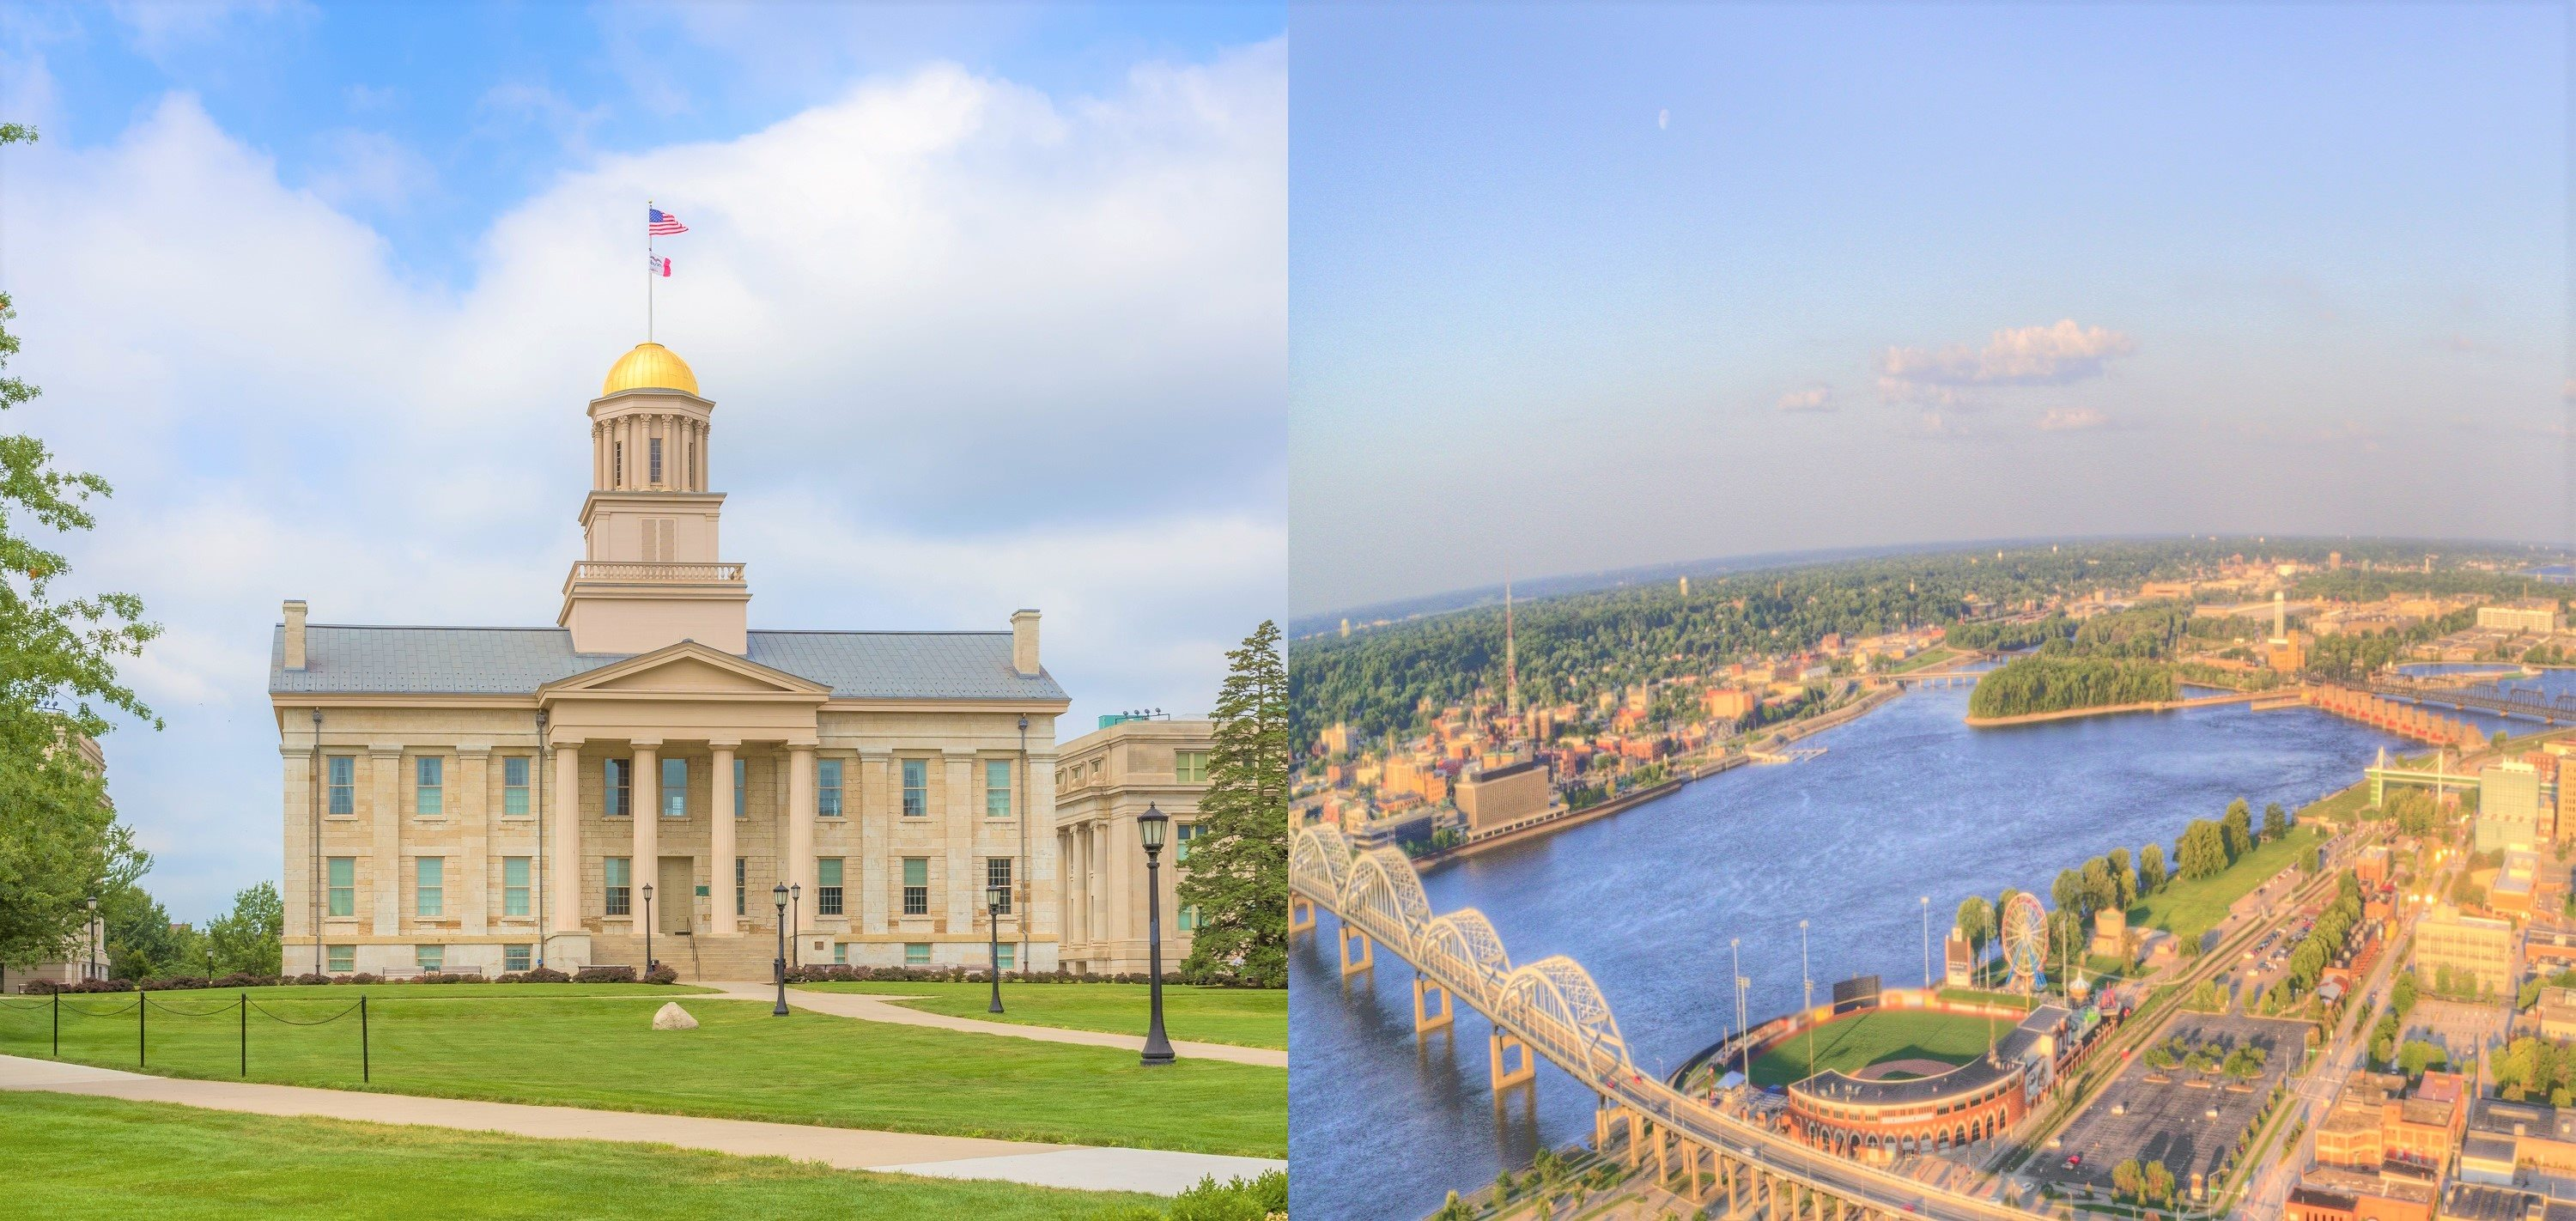 Old Capital Building in Iowa City and River in Davenport